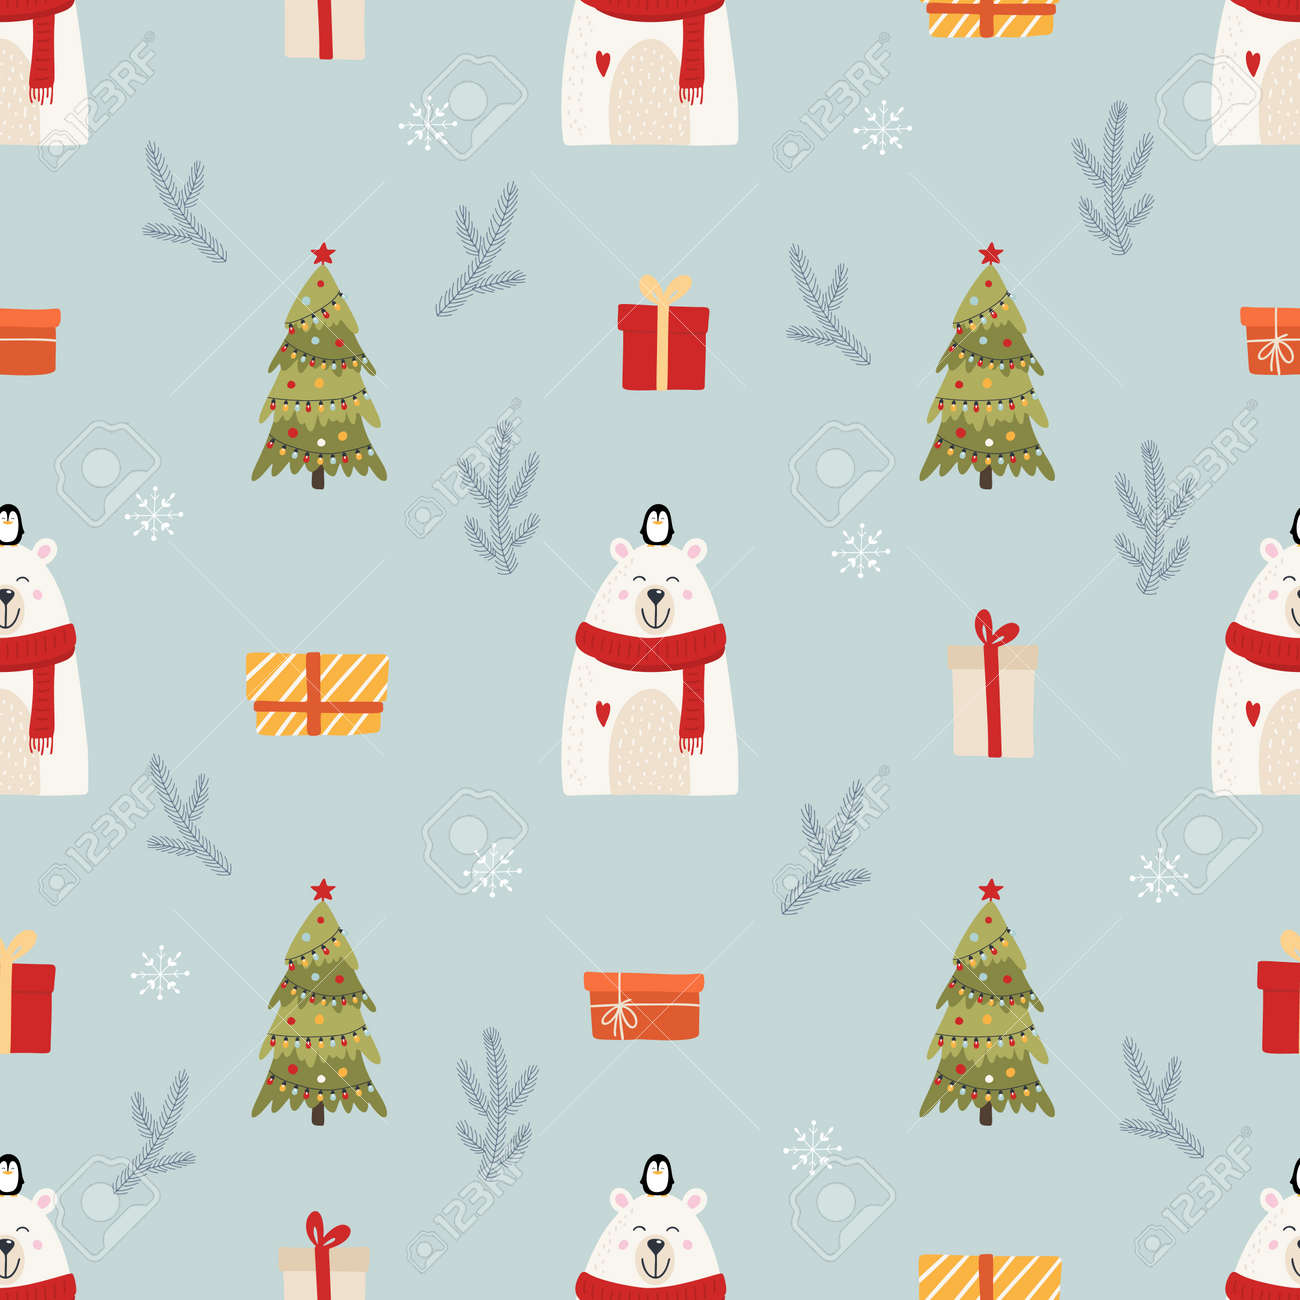 Christmas seamless pattern for background - 134853291